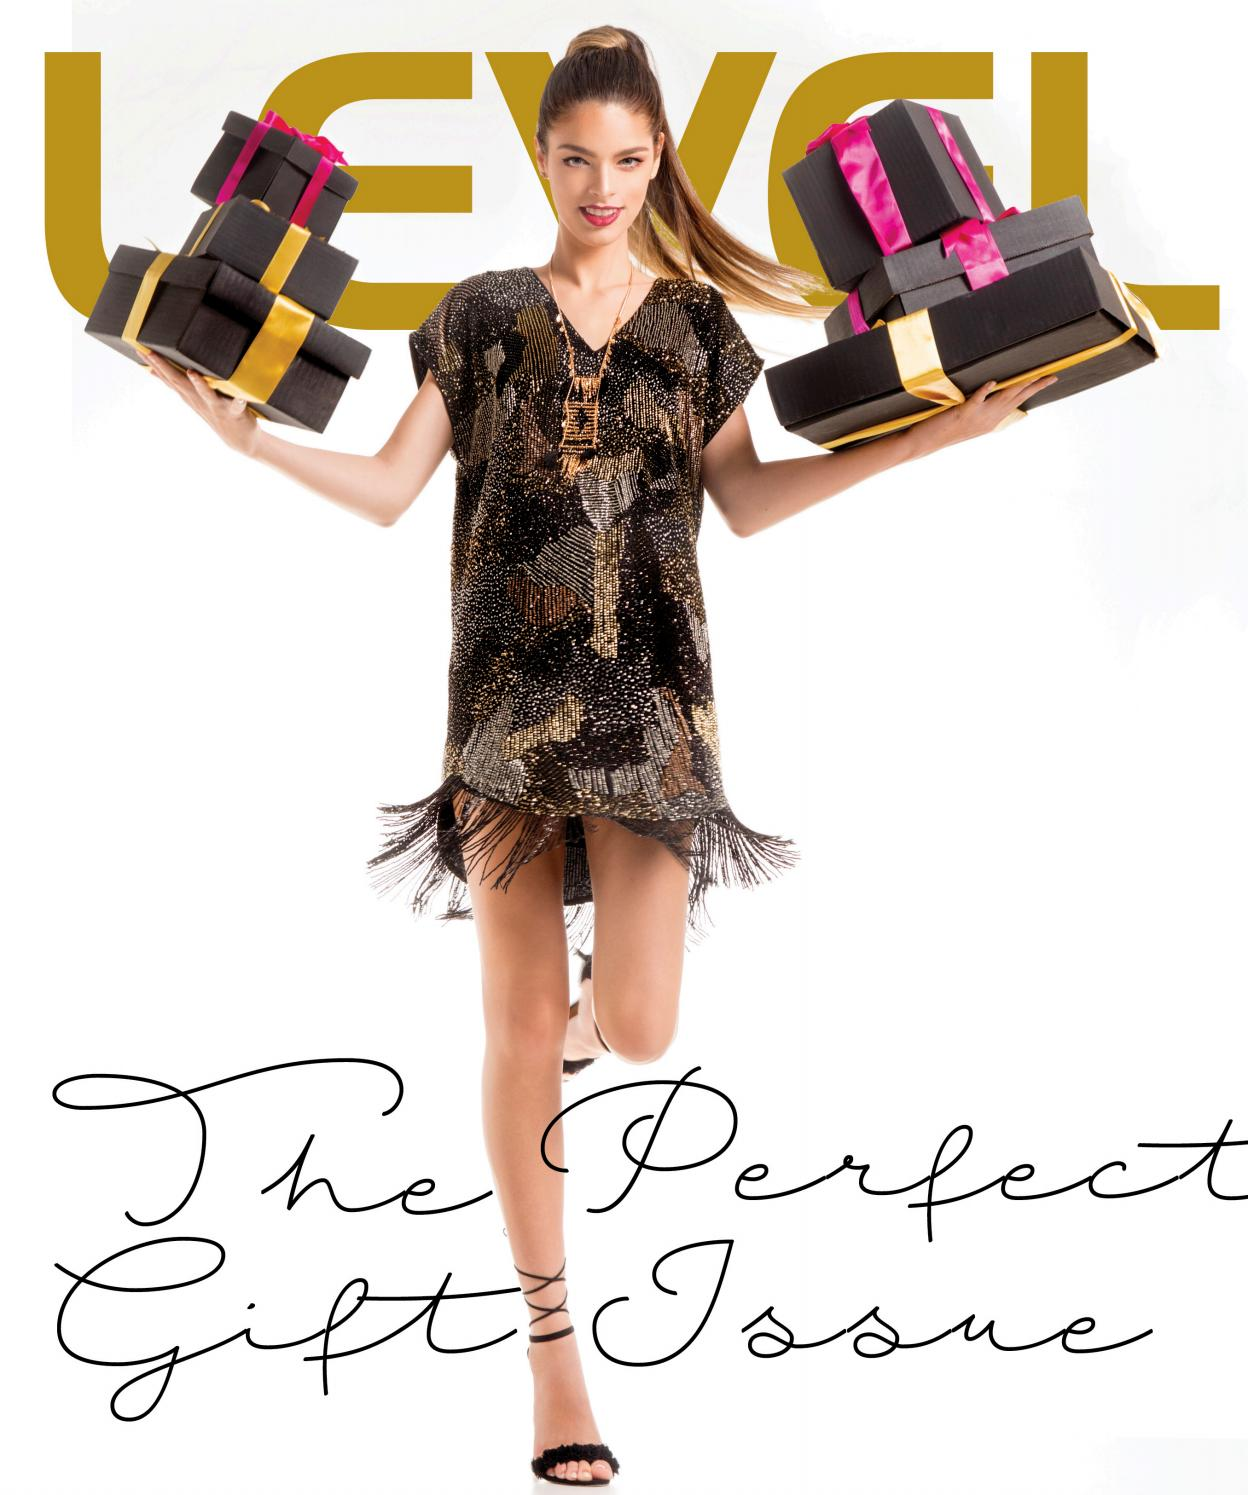 53 The Perfect Gift Issue 2017 by Revista Level - issuu 01a5ba15a6bd